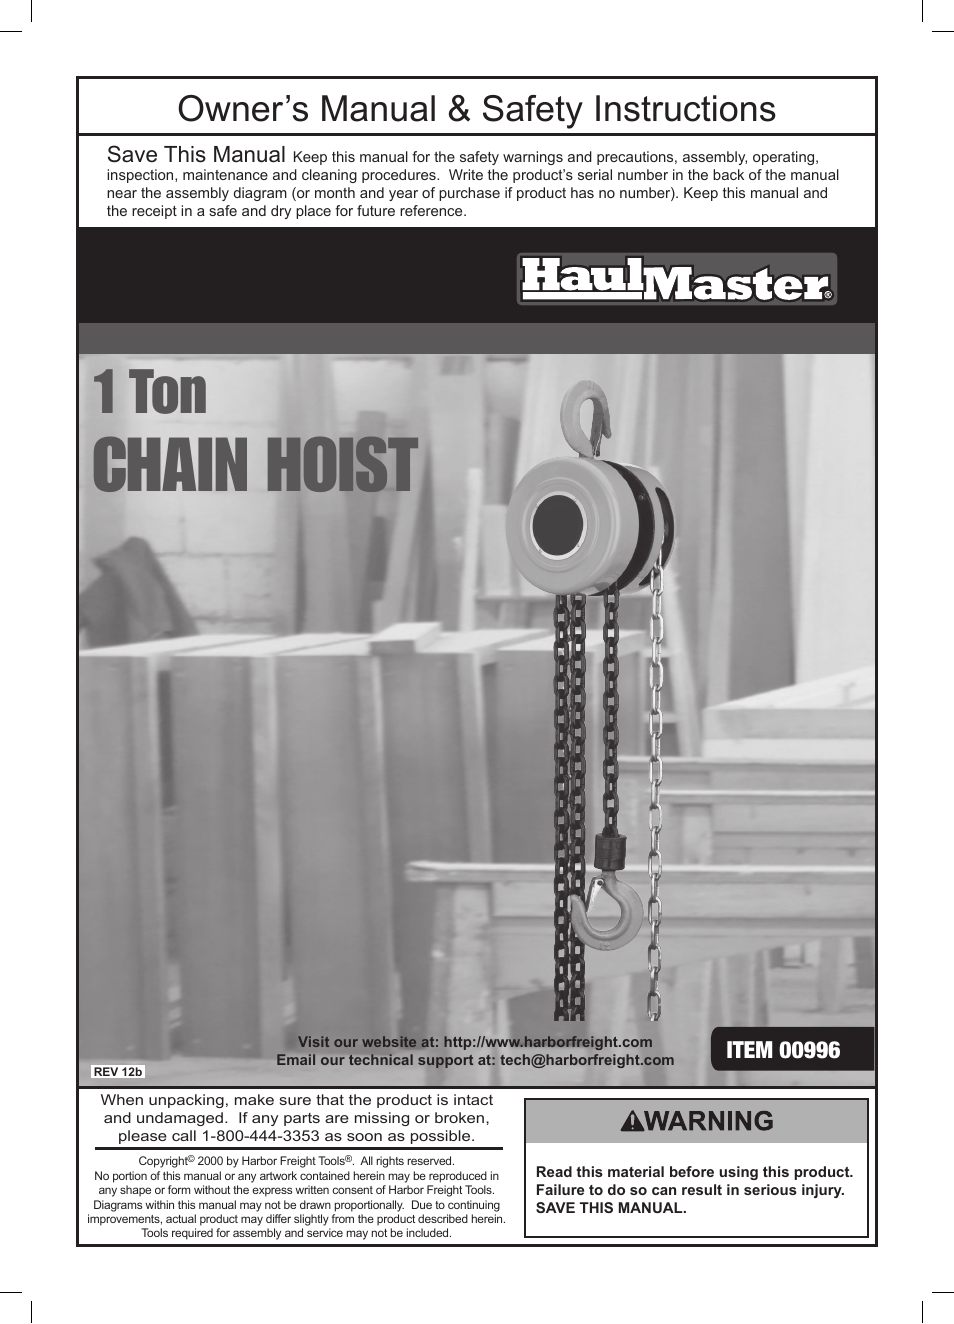 medium resolution of harbor freight tools haulmaster 1 ton chain hoist 996 user manual 12 pages